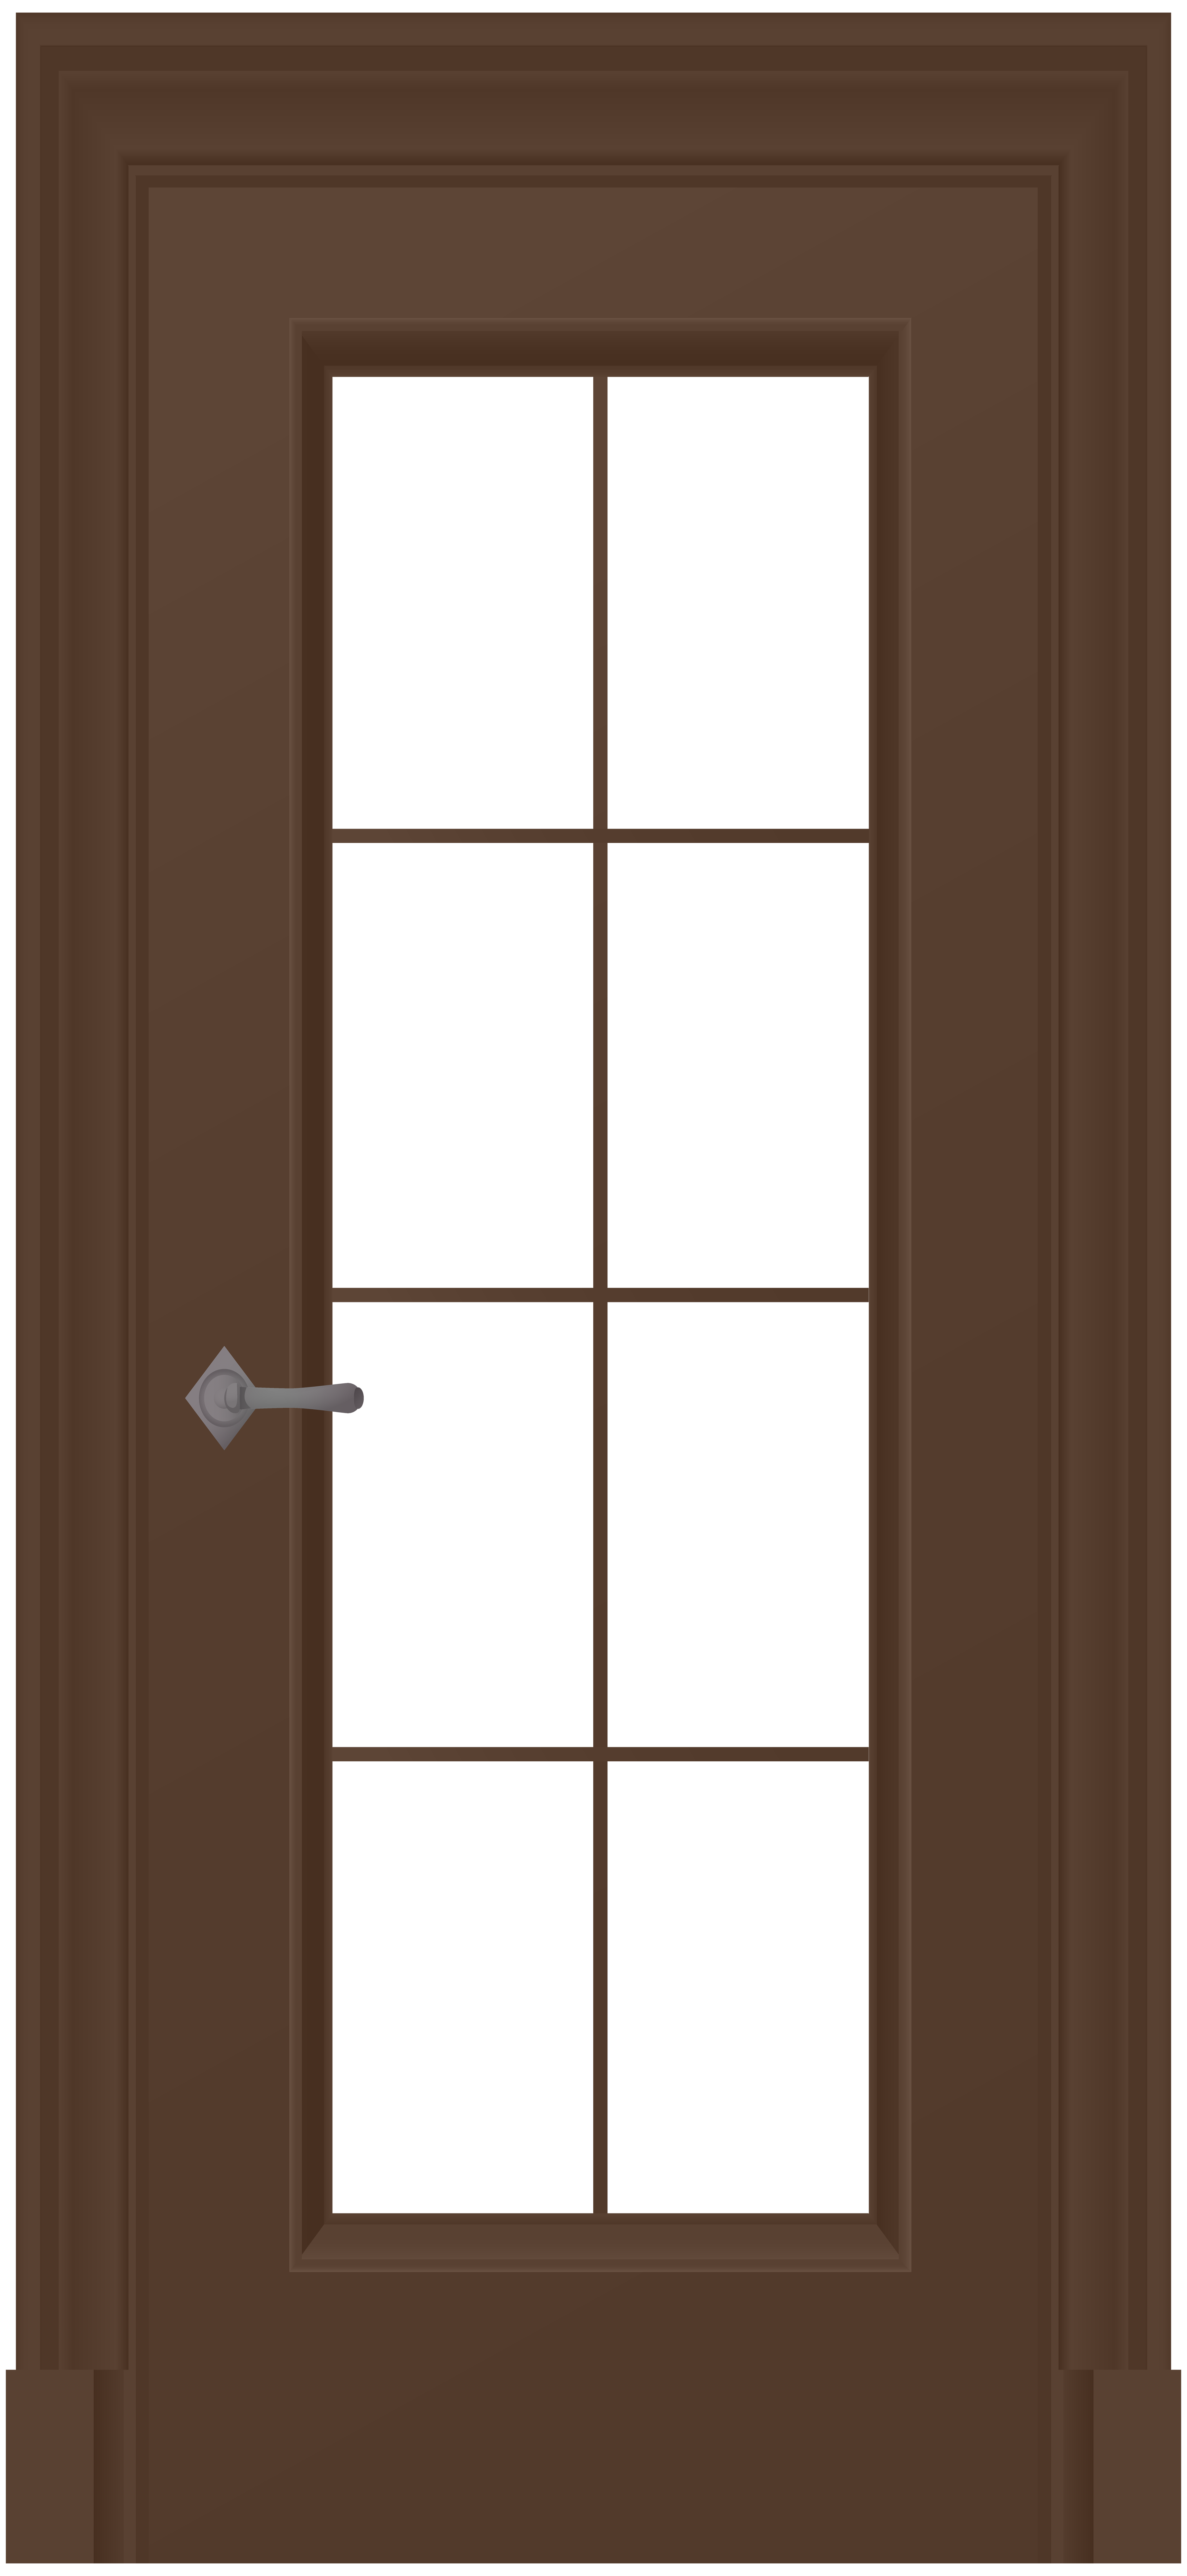 Brown png clip art. Door clipart wood door